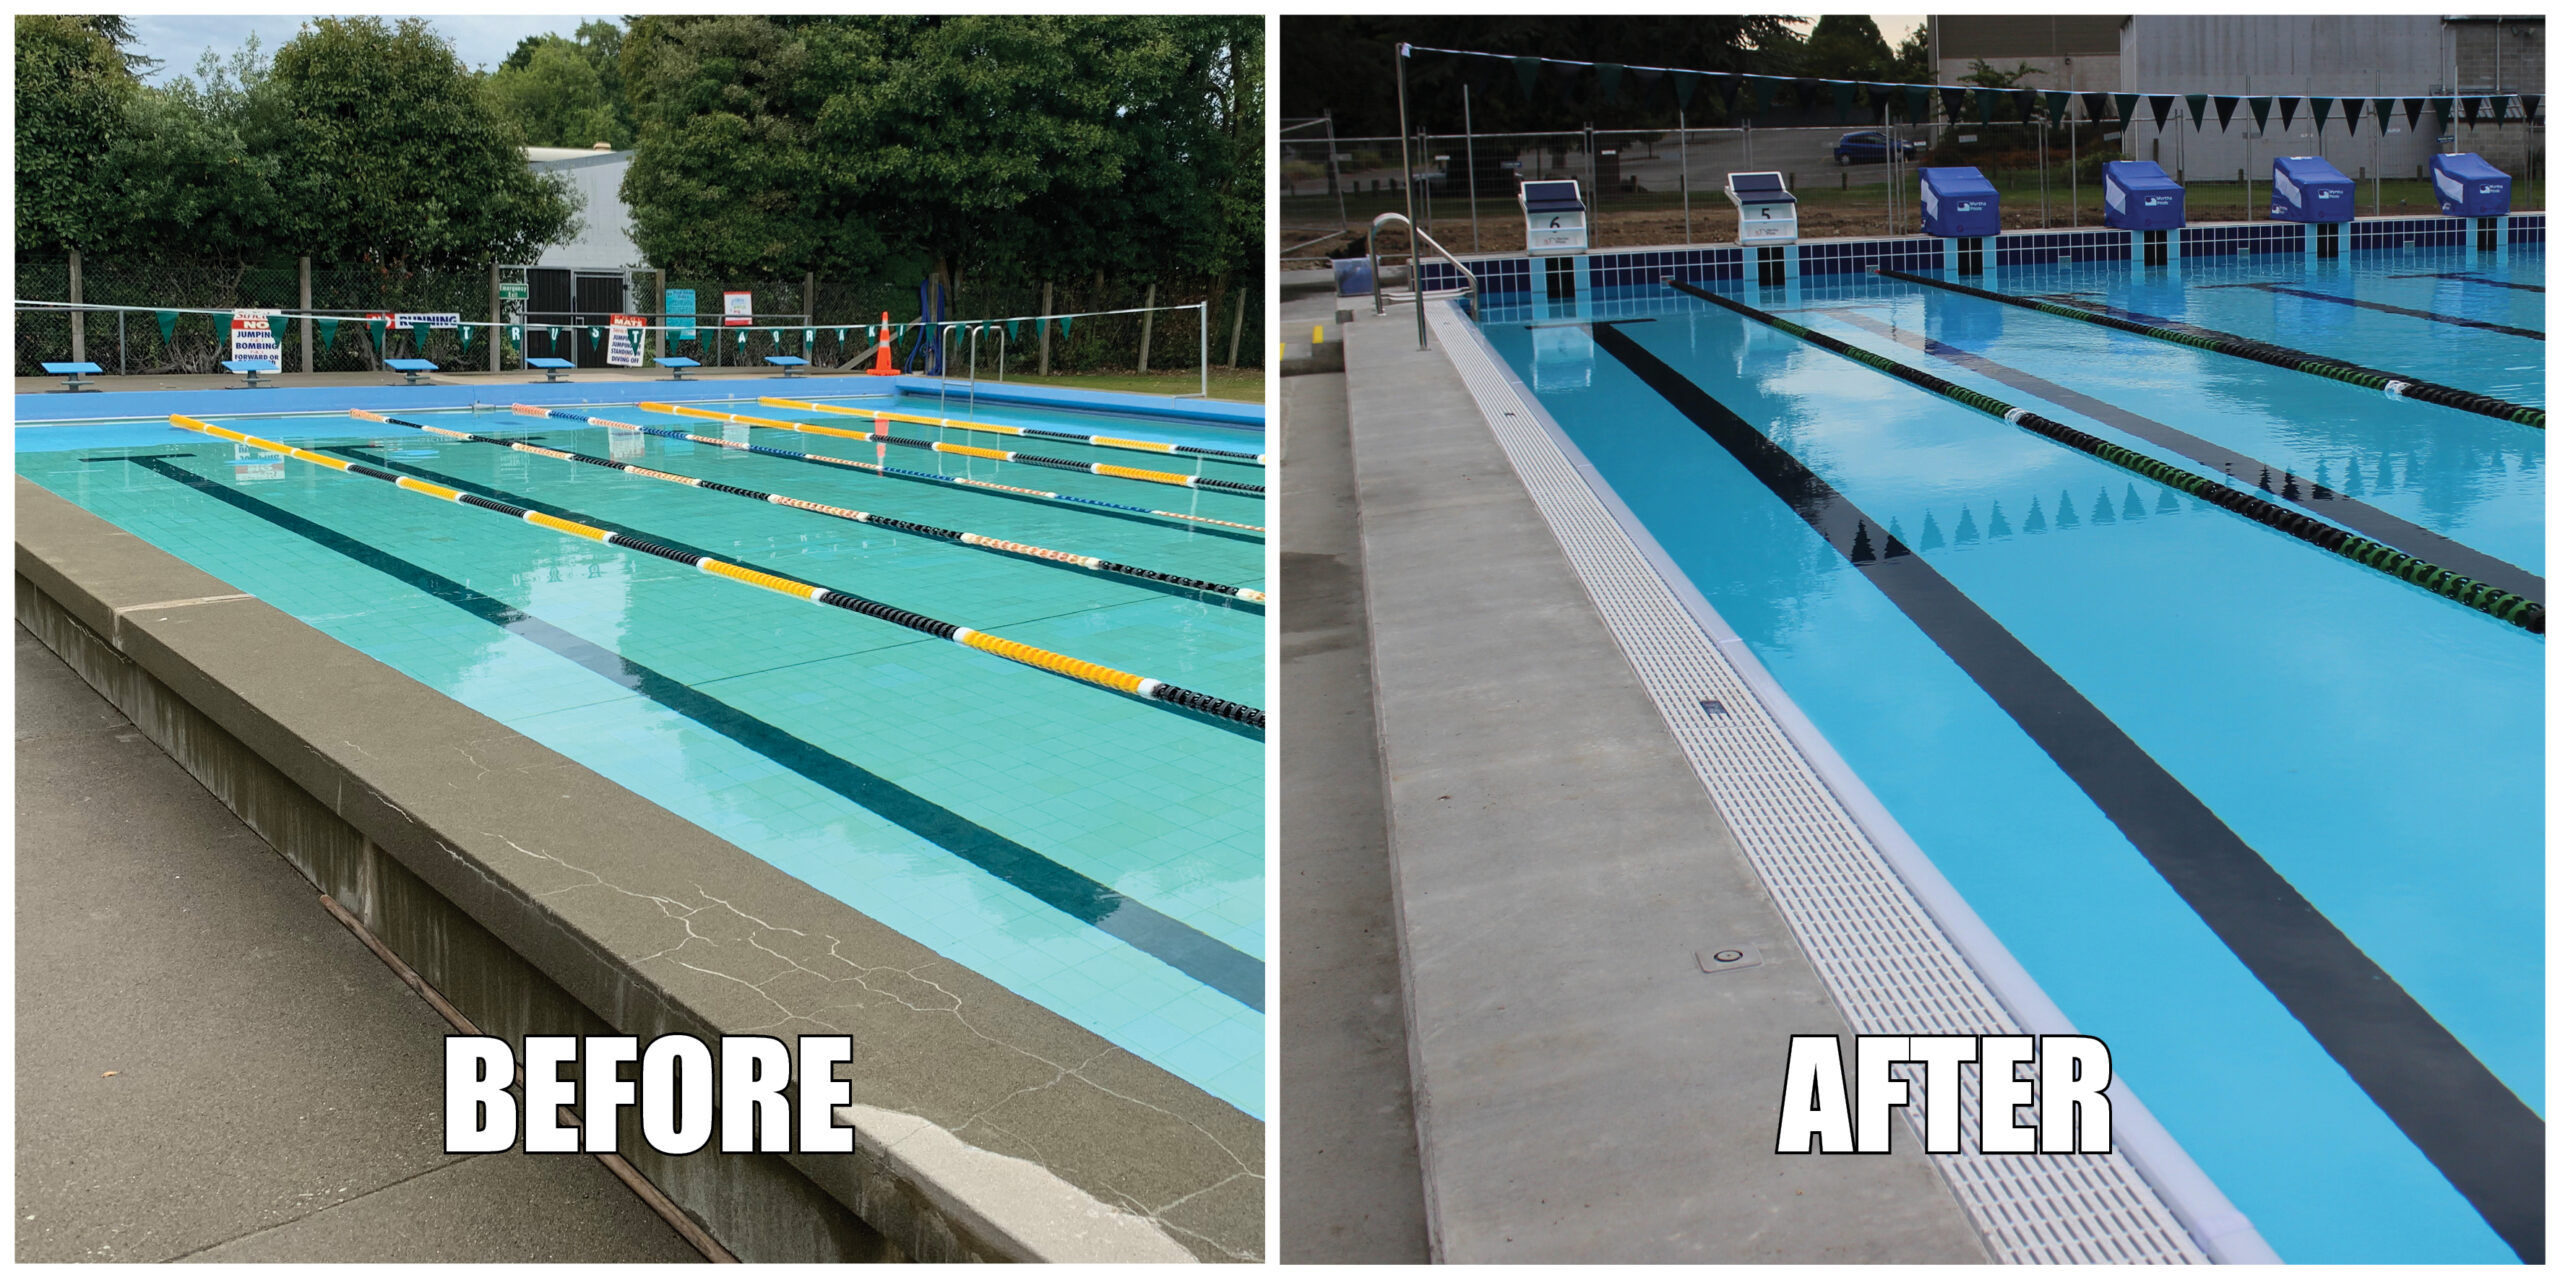 Before and after image of outdoor pool